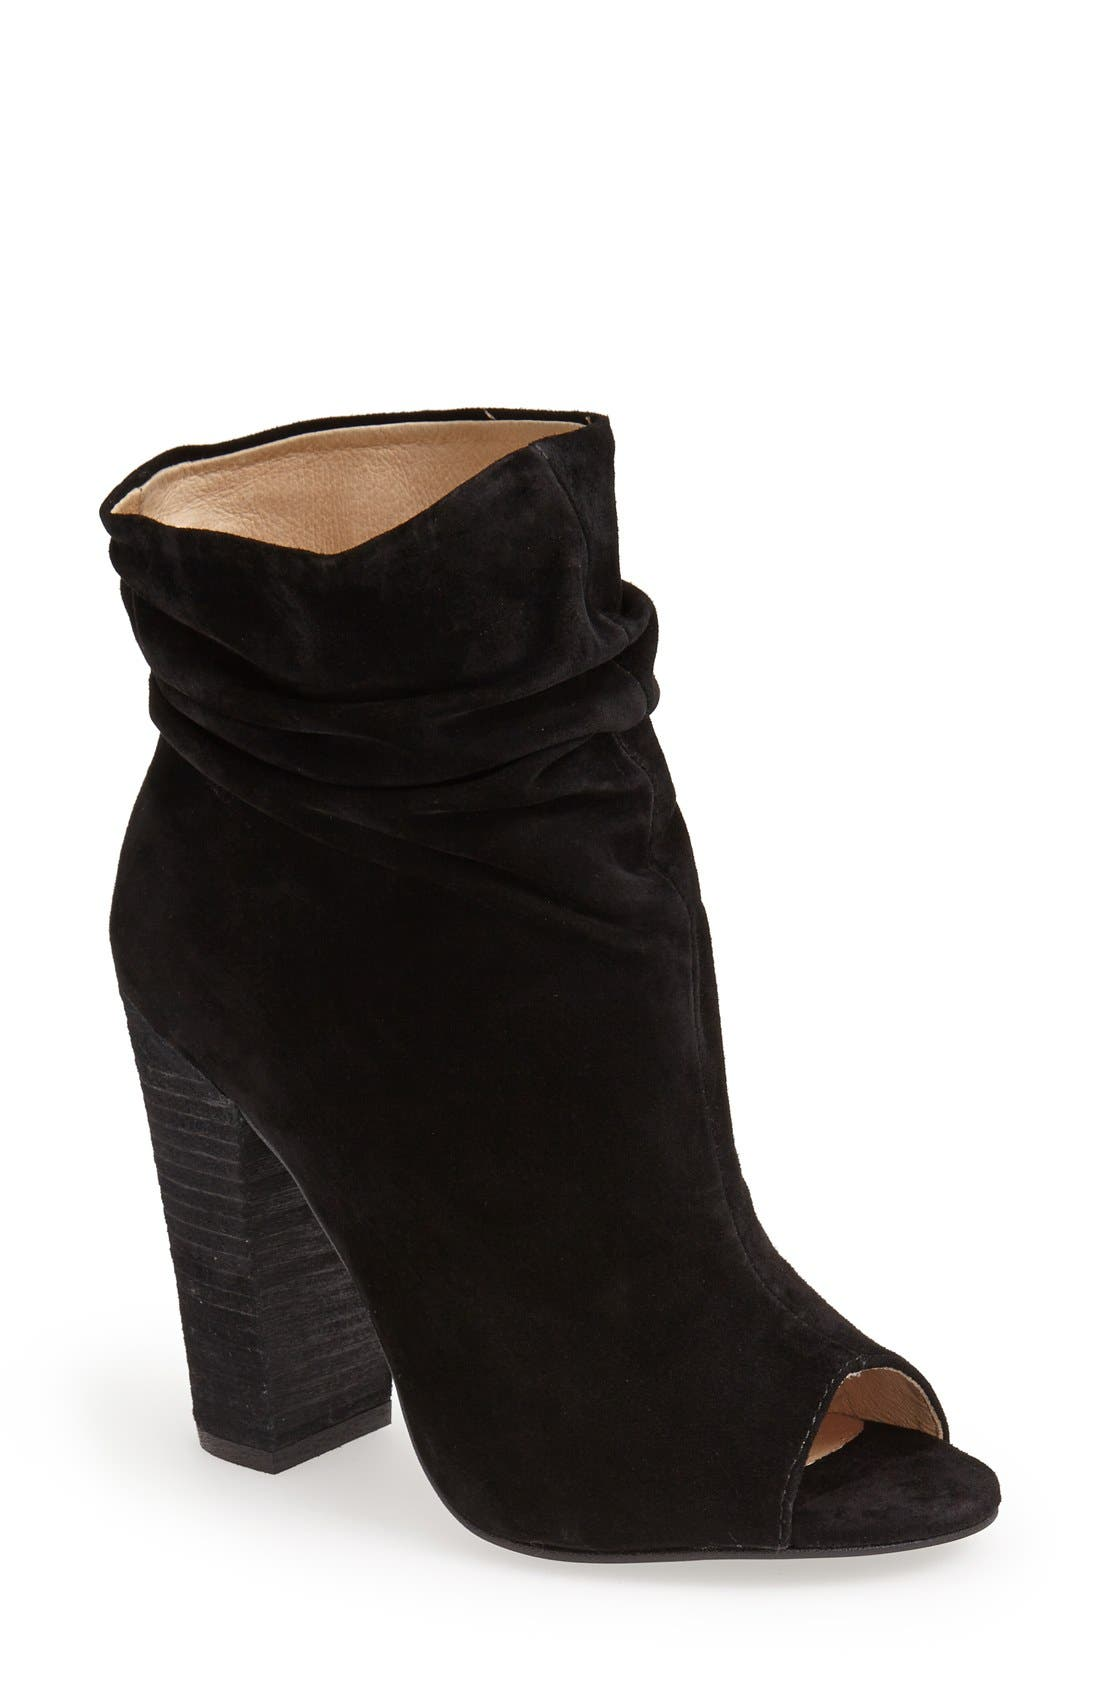 'Laurel' Peep Toe Bootie,                             Main thumbnail 1, color,